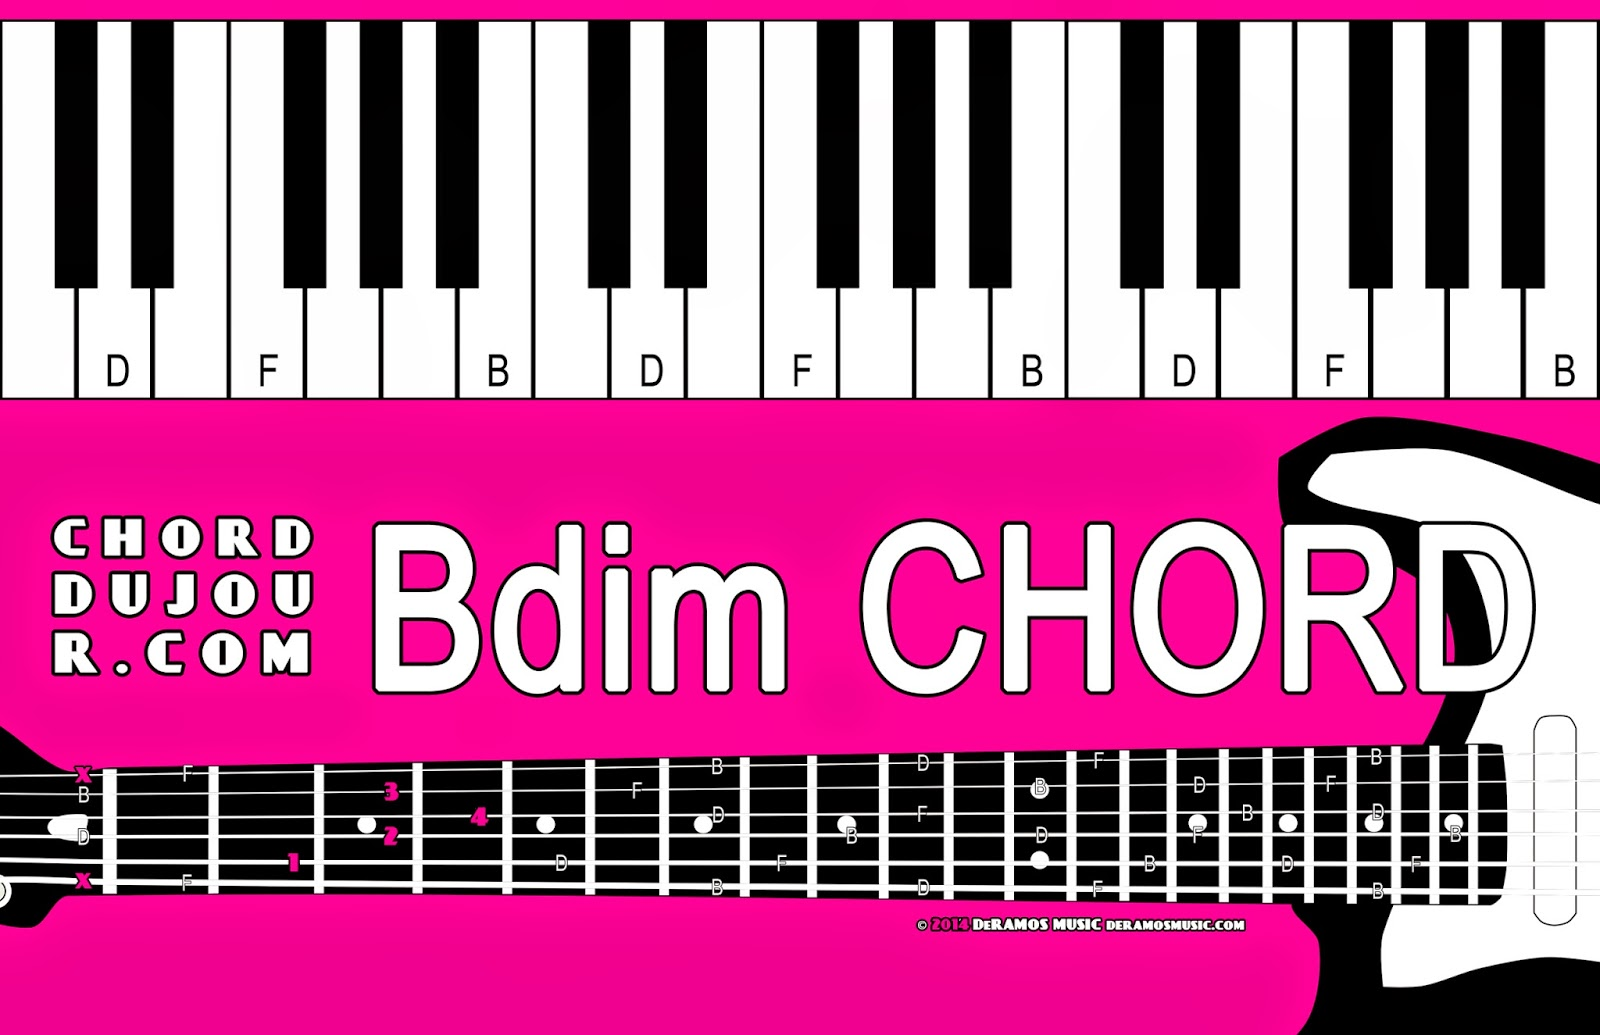 Chord du jour chord deux jour challenge bdim and dm7 if youre a beginning guitarist or starting out with music in general you can keep this chord in mind for later depending on the genre of music hexwebz Image collections